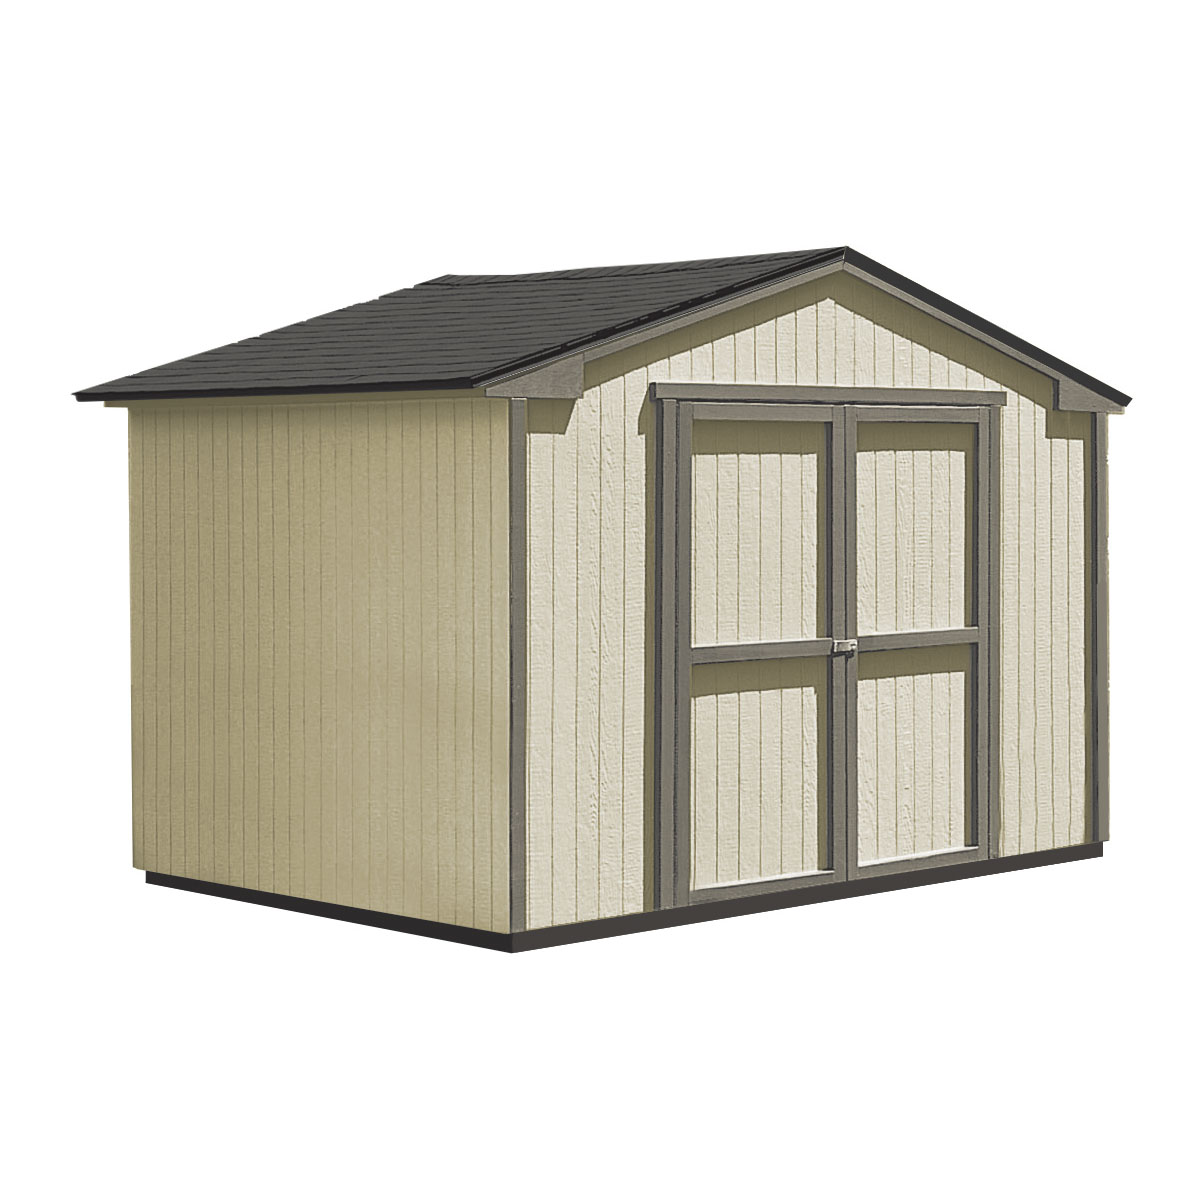 service shed barns worth and red moving tans affordable fort storage sheds browns plastic company wheels lifetime